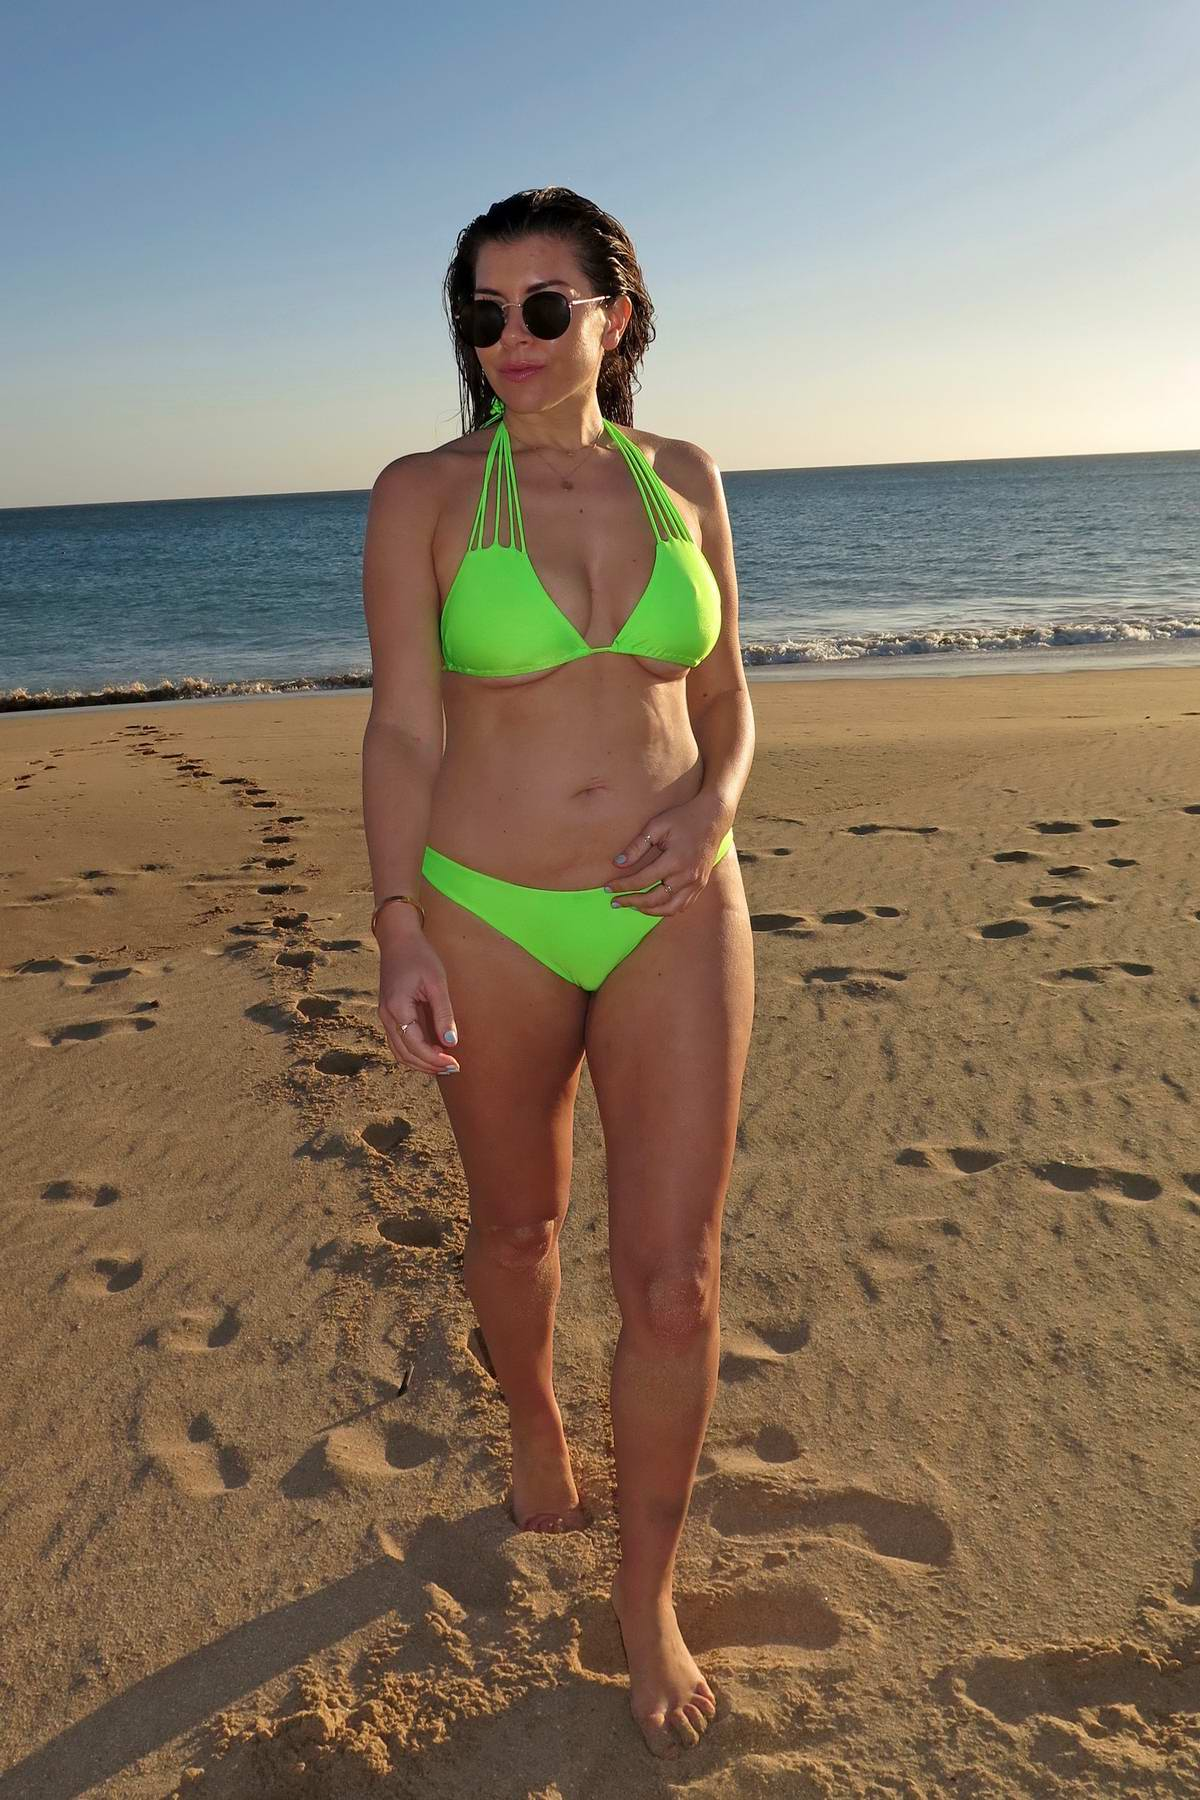 Imogen Thomas poses in a neon green bikini during a beach photoshoot for her own swimwear range in Faro, Portugal